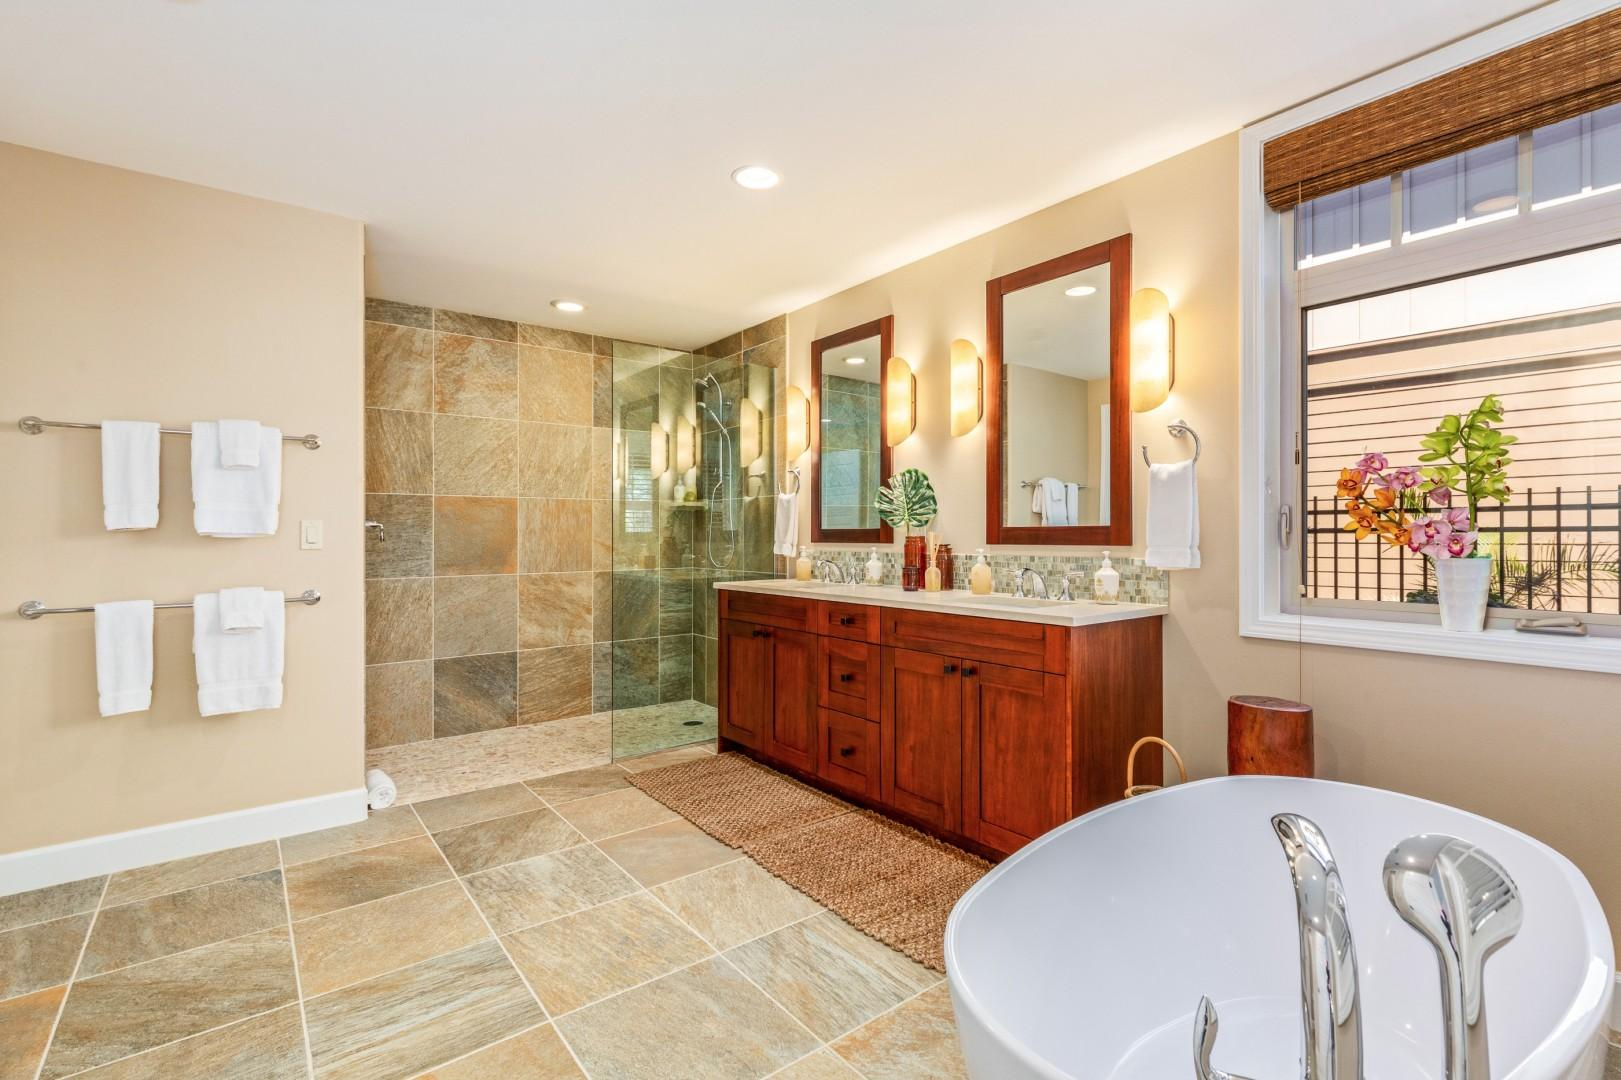 Alternate view of large and luxurious master bath.